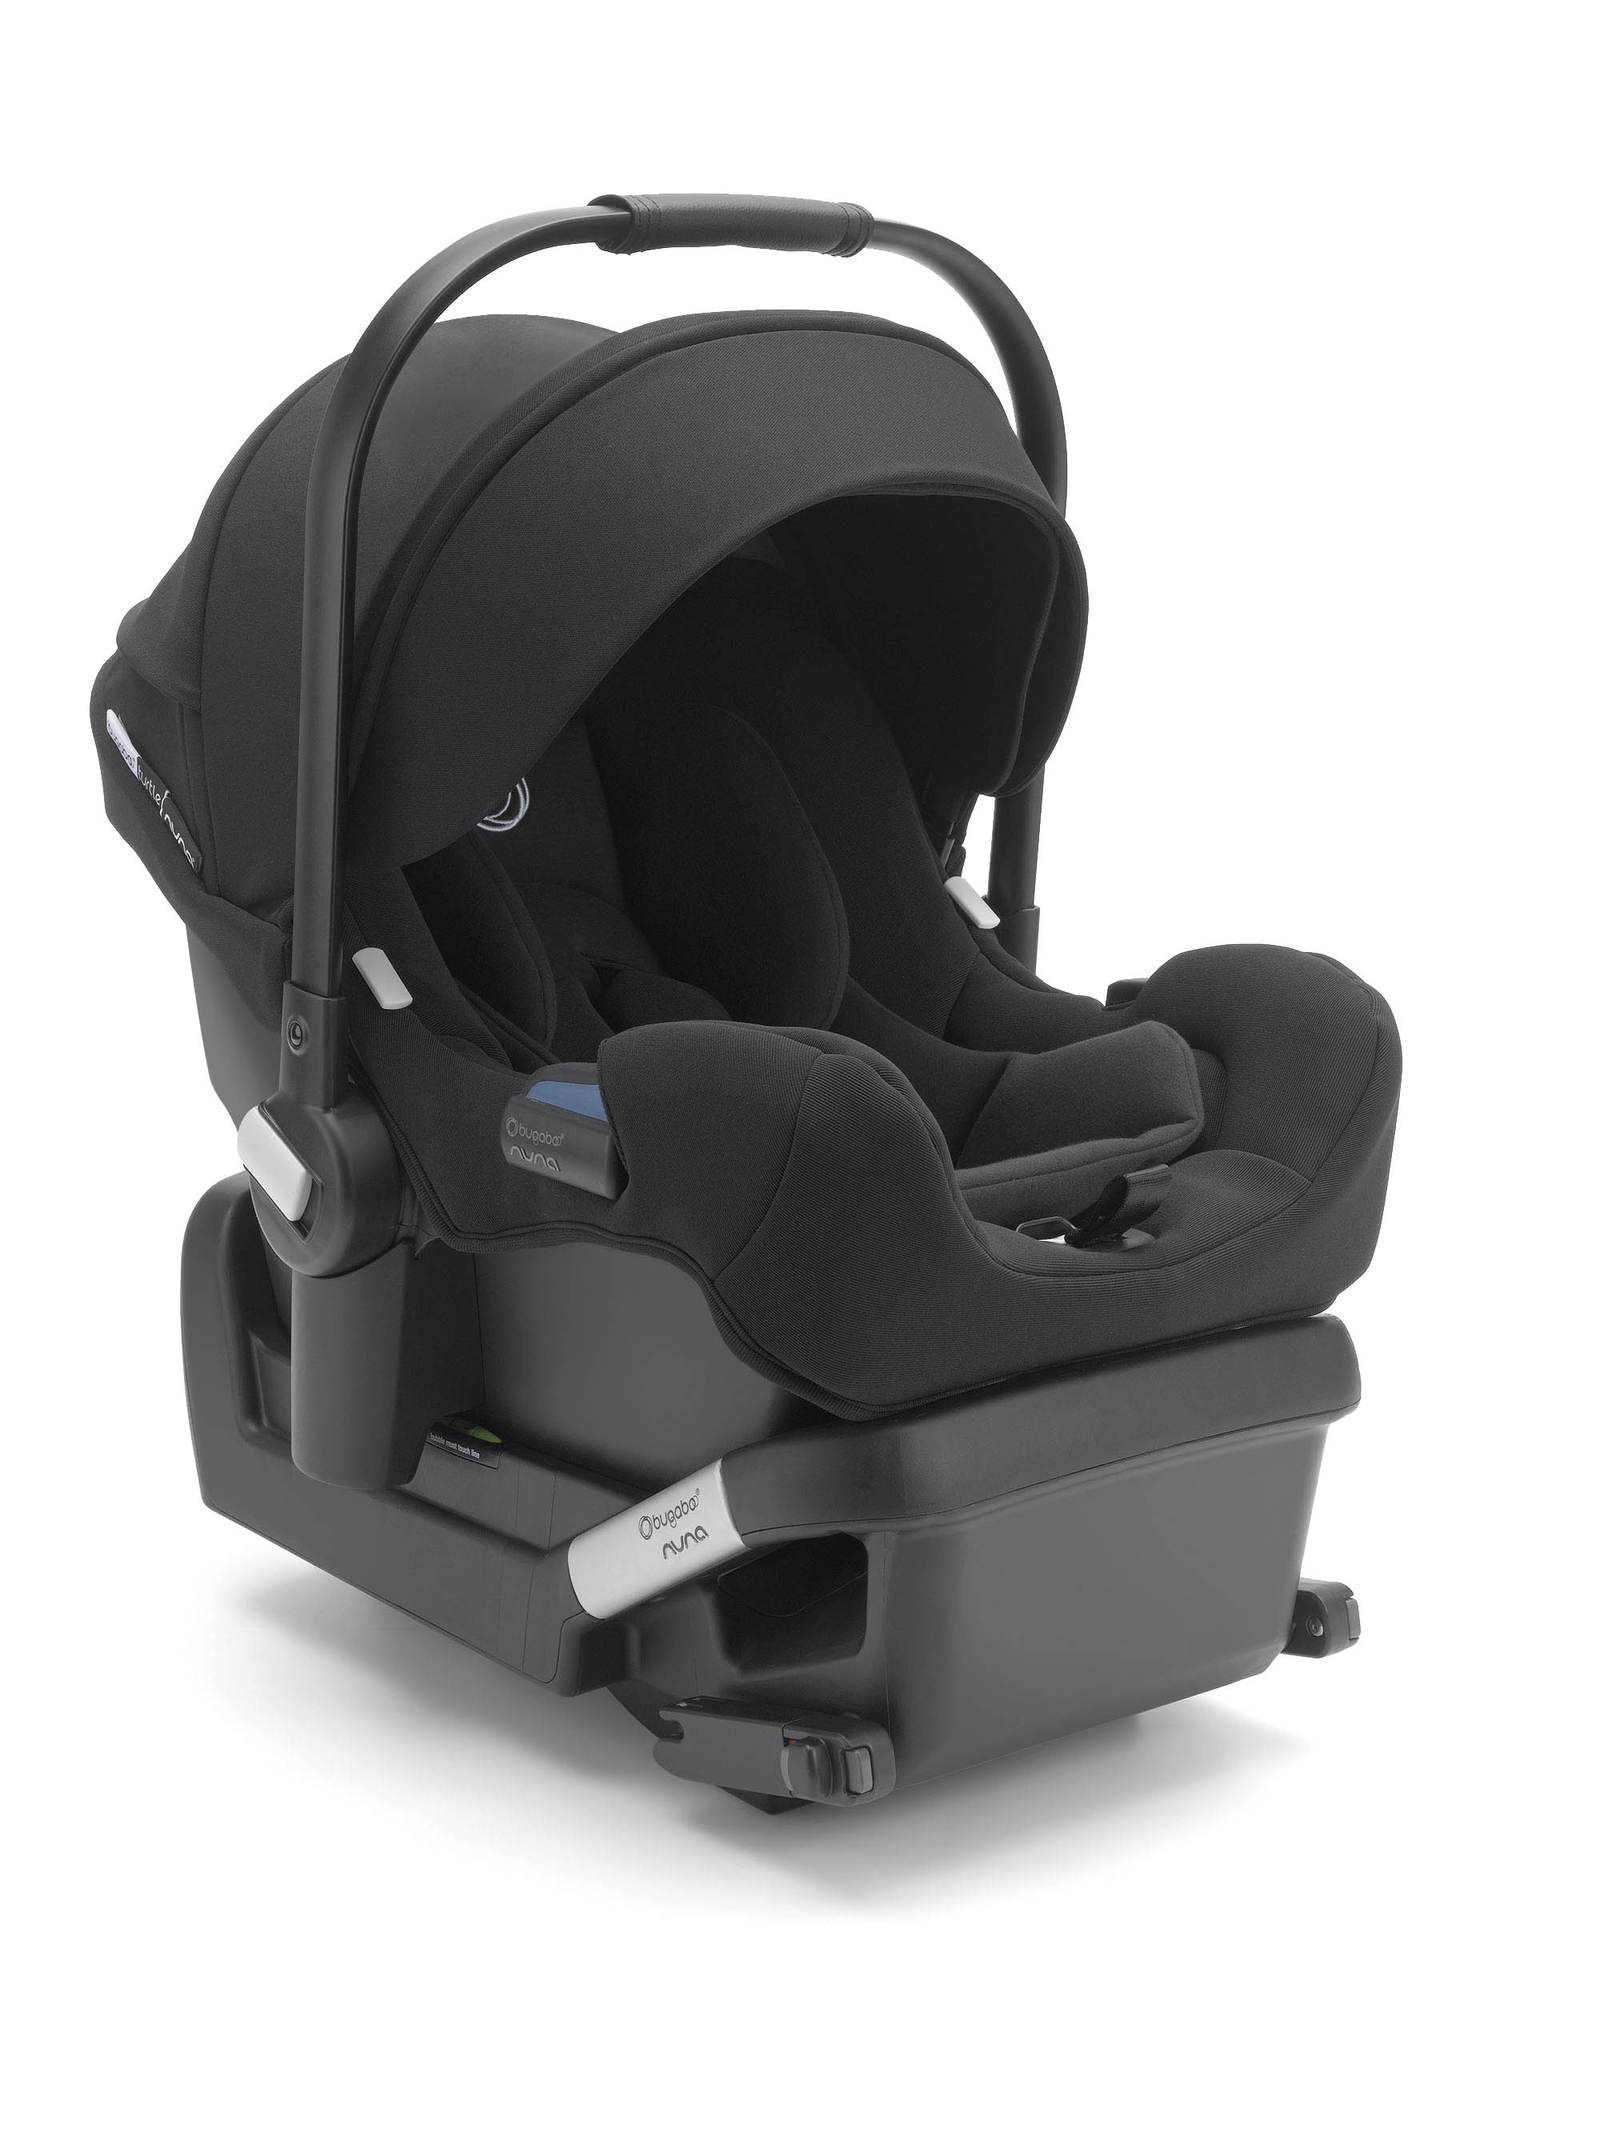 Bugaboo Turtle by Nuna car seat with base Black